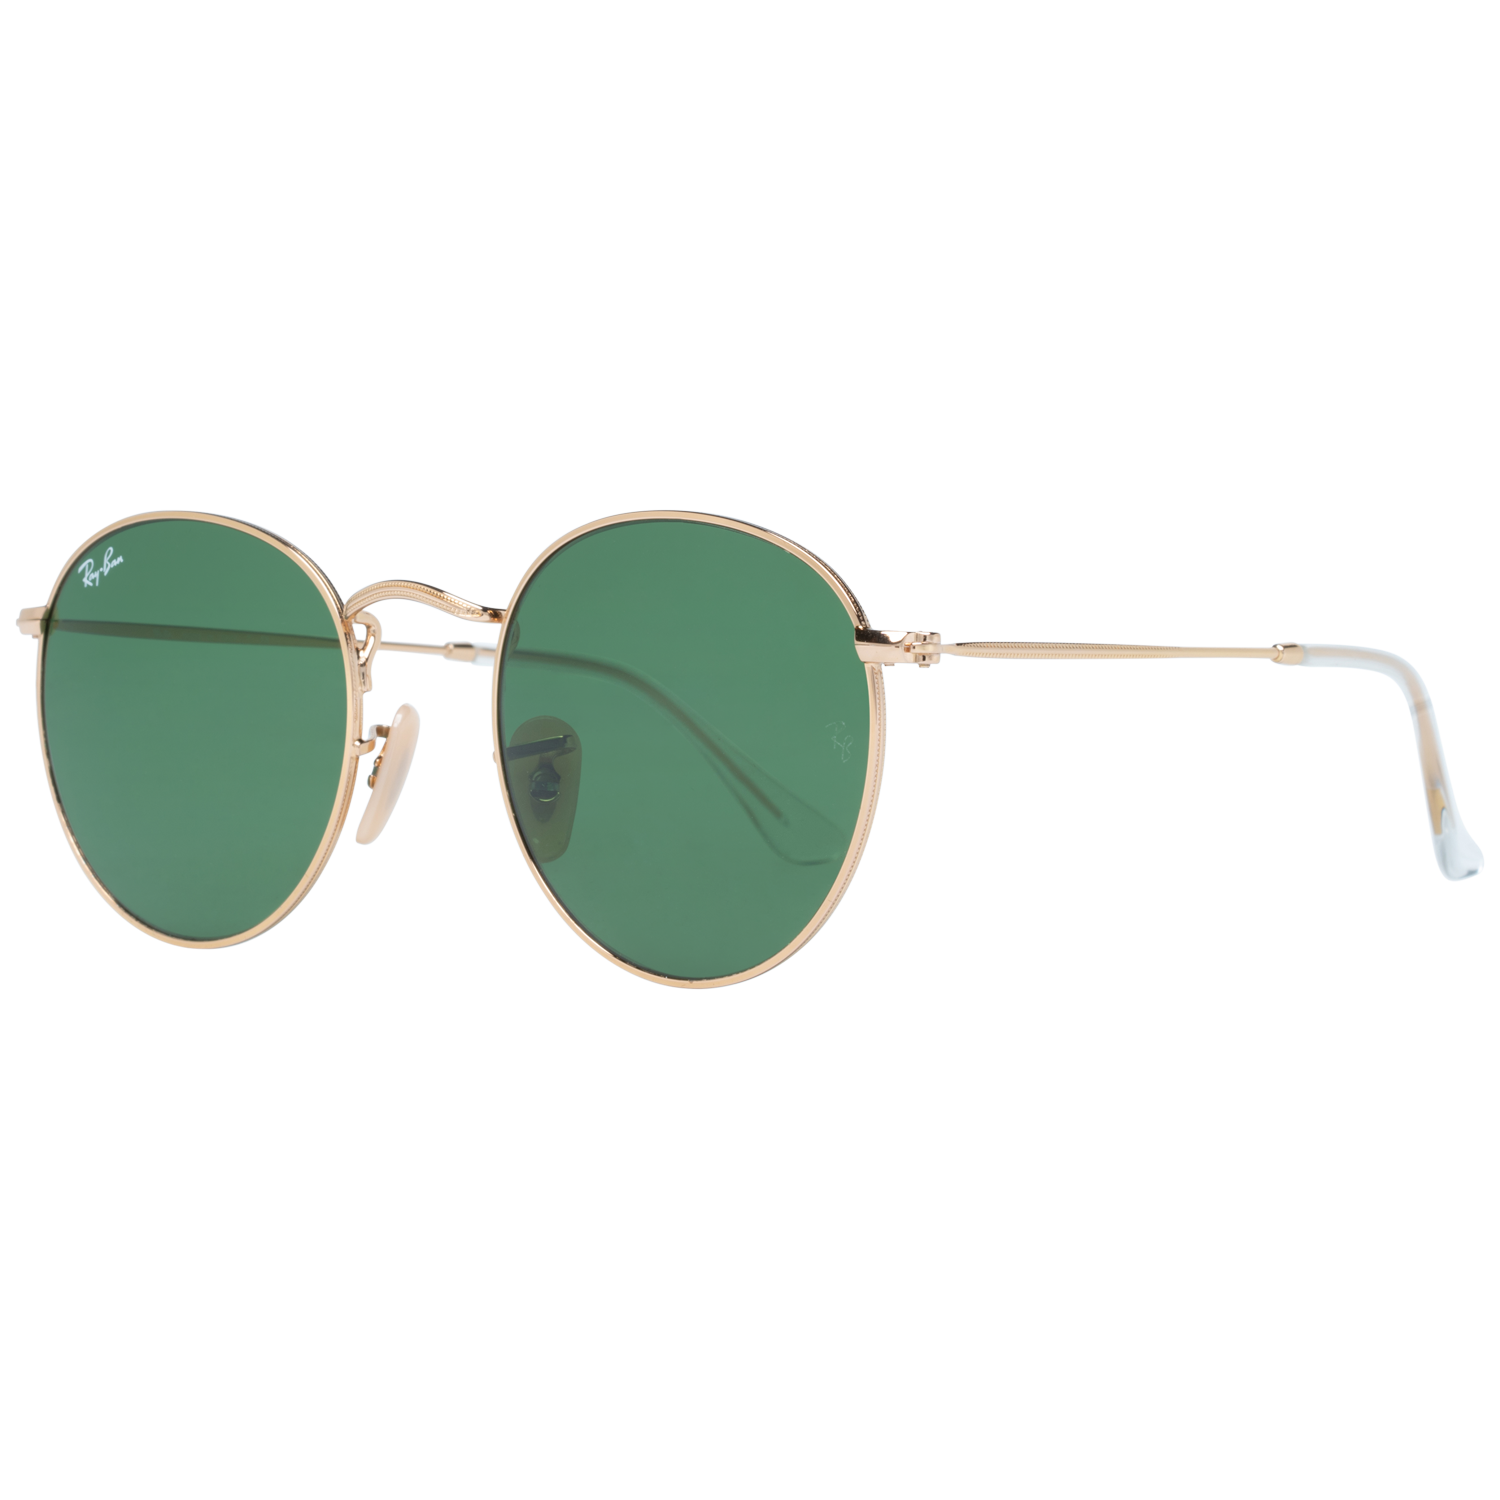 Ray-Ban Sunglasses RB3447 001 50 Round Gold